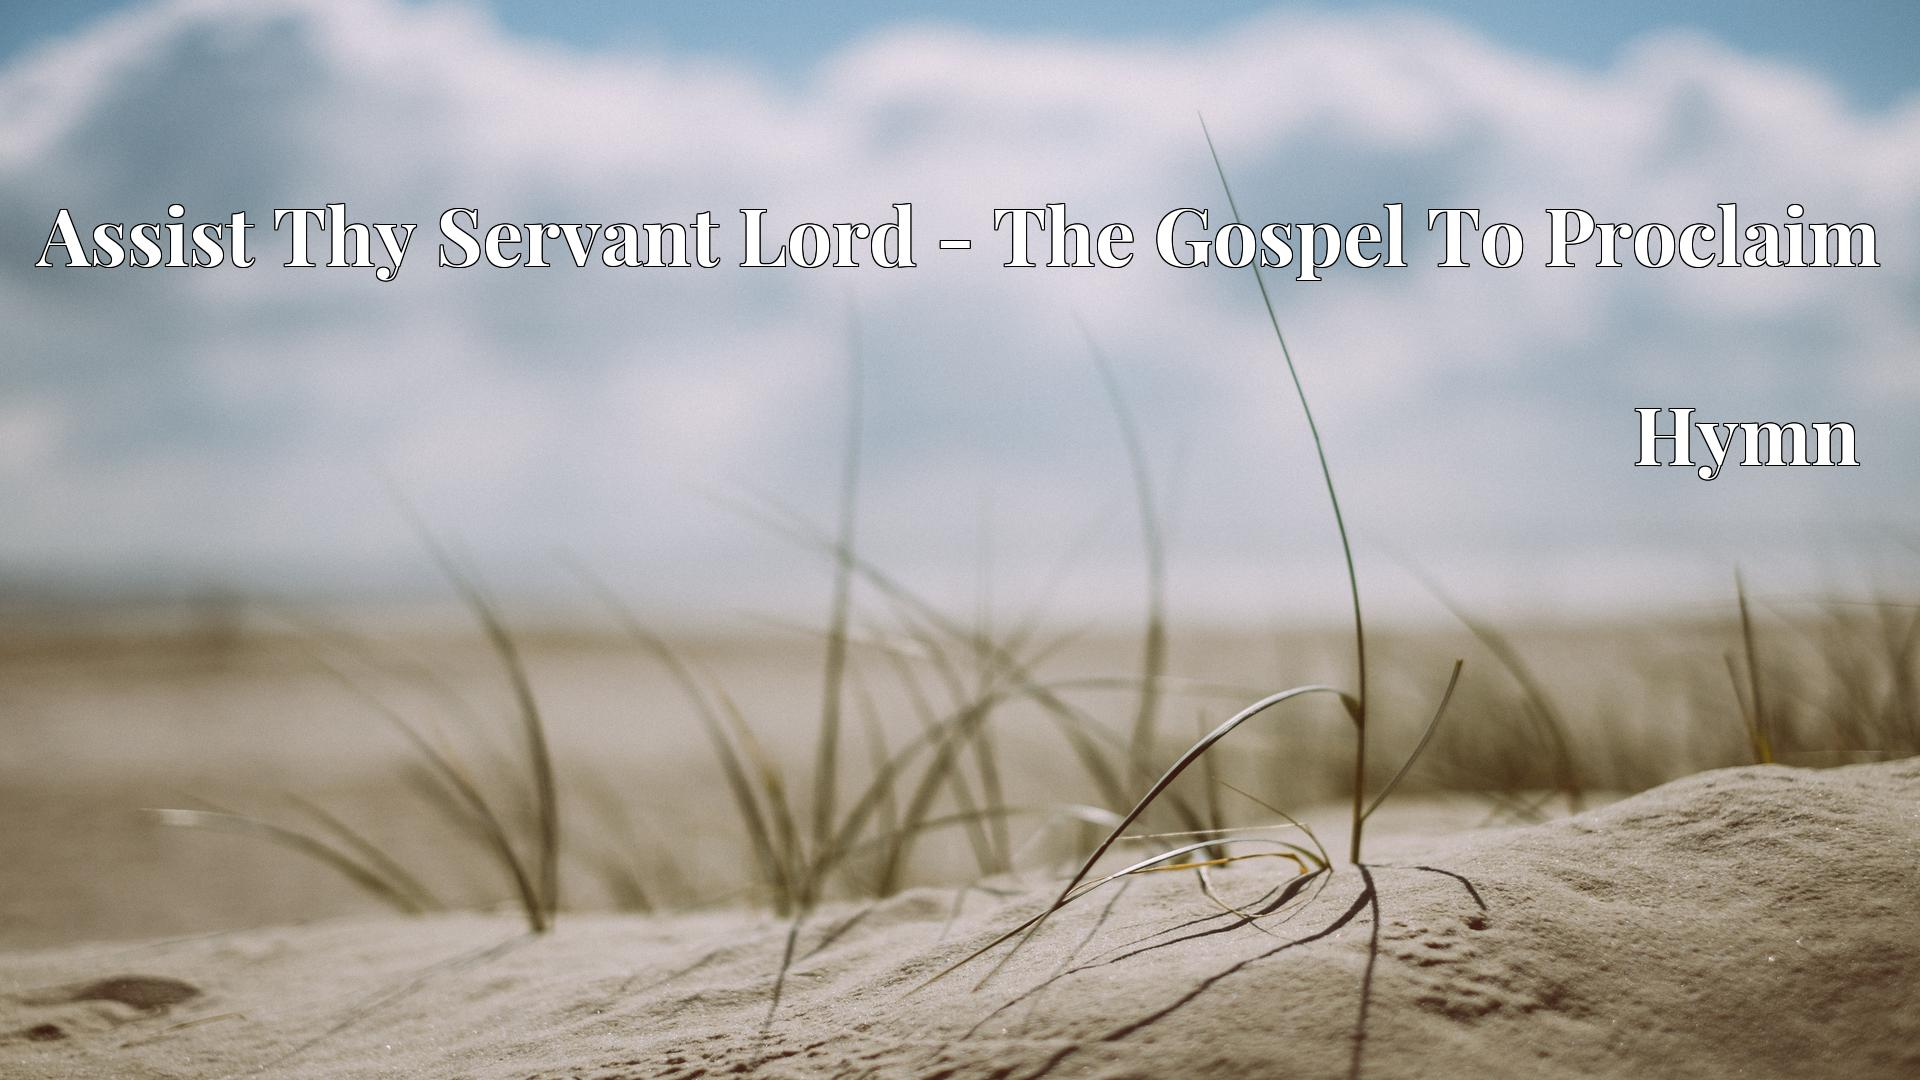 Assist Thy Servant Lord - The Gospel To Proclaim - Hymn